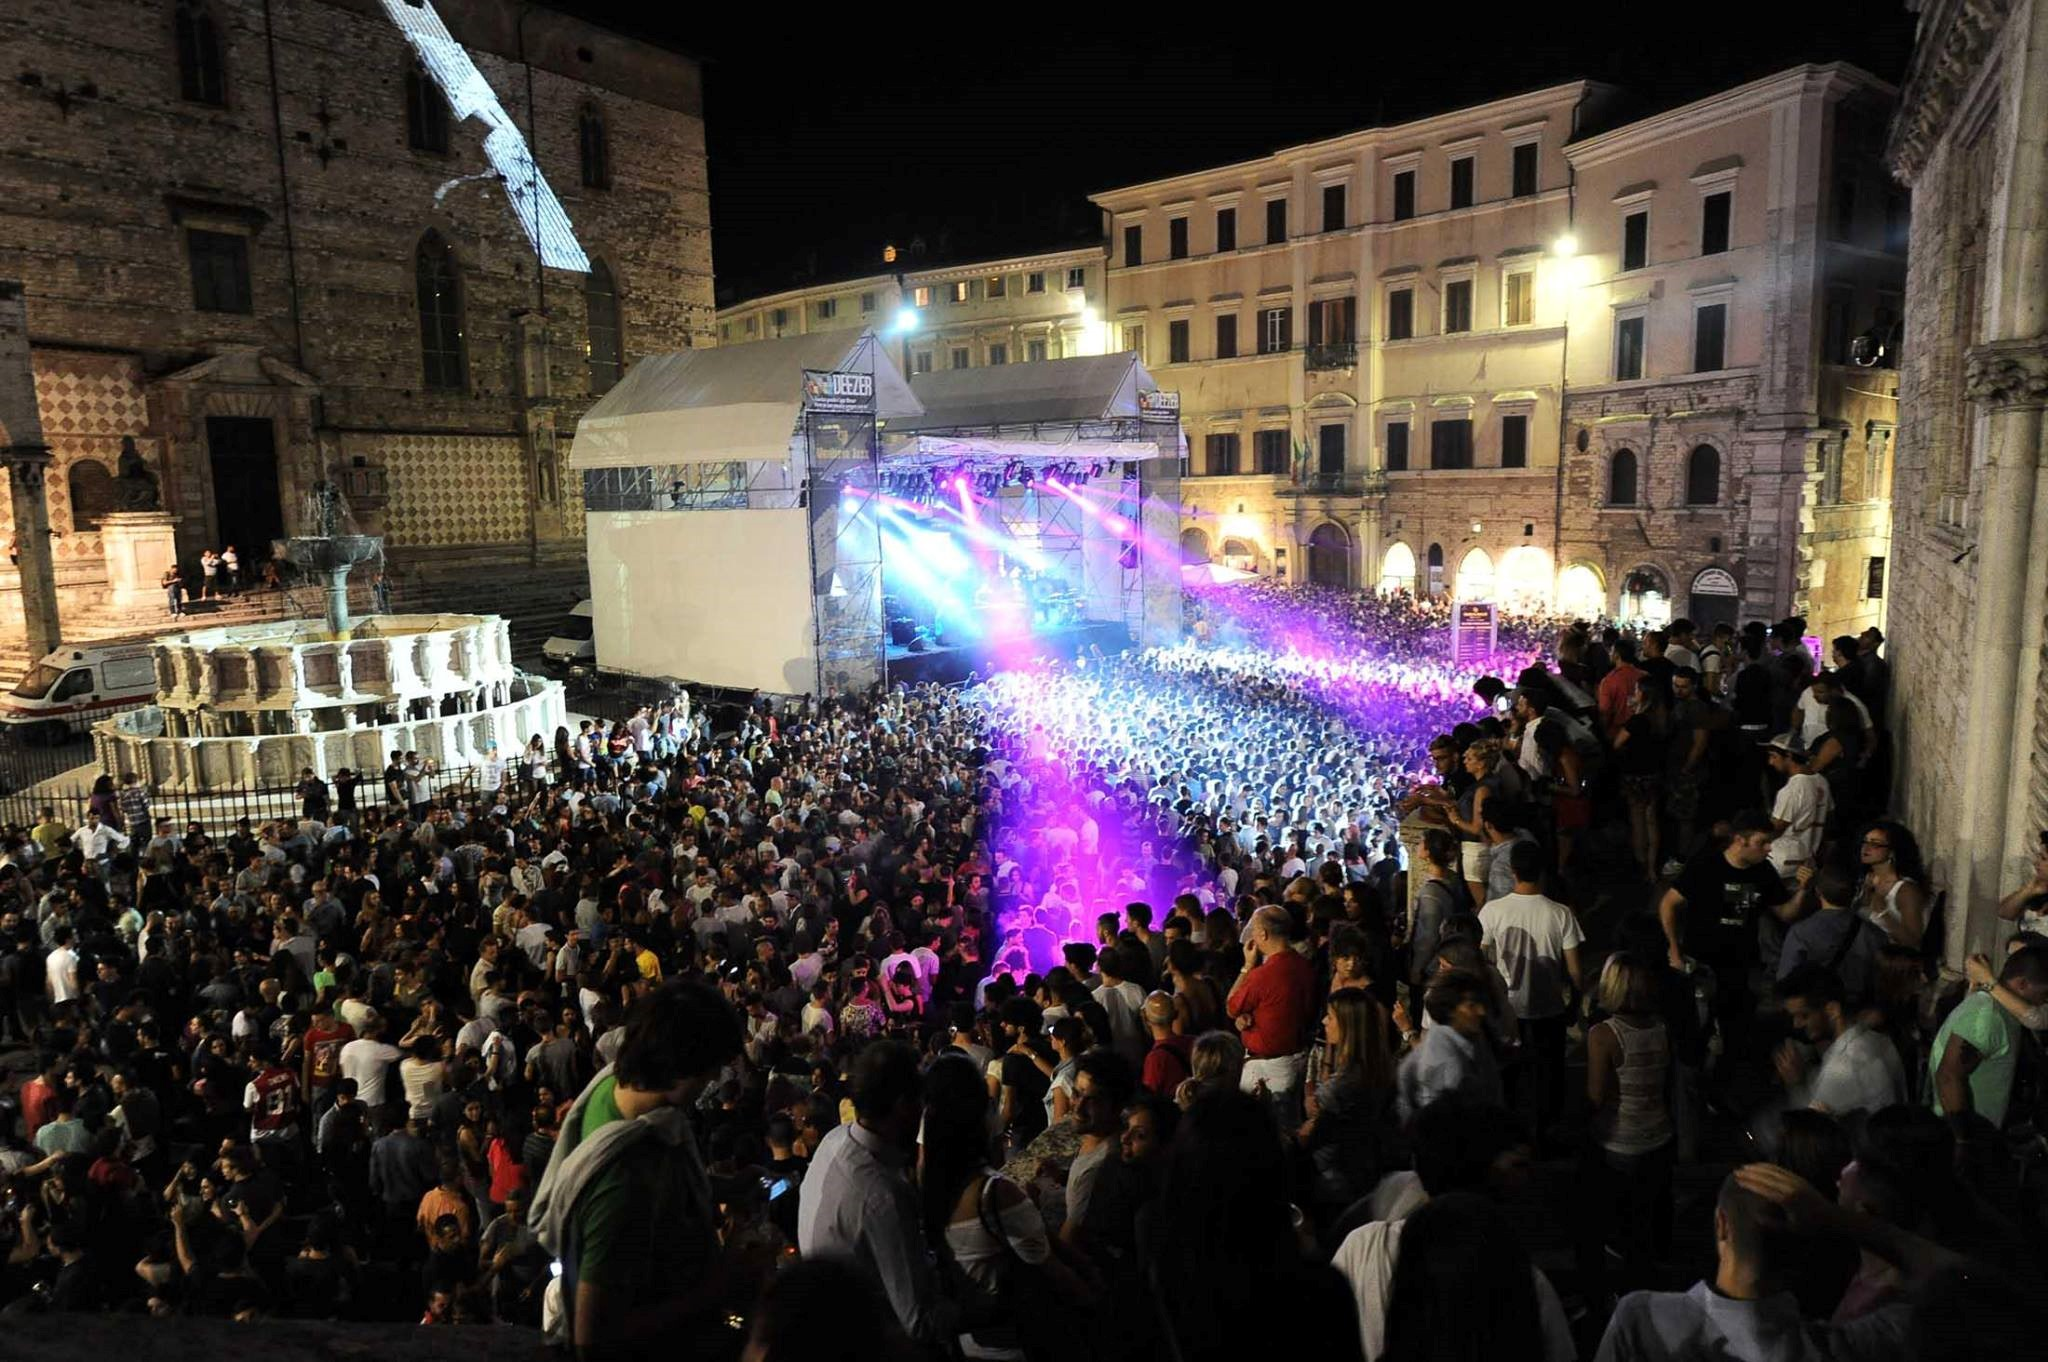 Umbria Jazz Festival 10 reasons to visit with Essential Italy